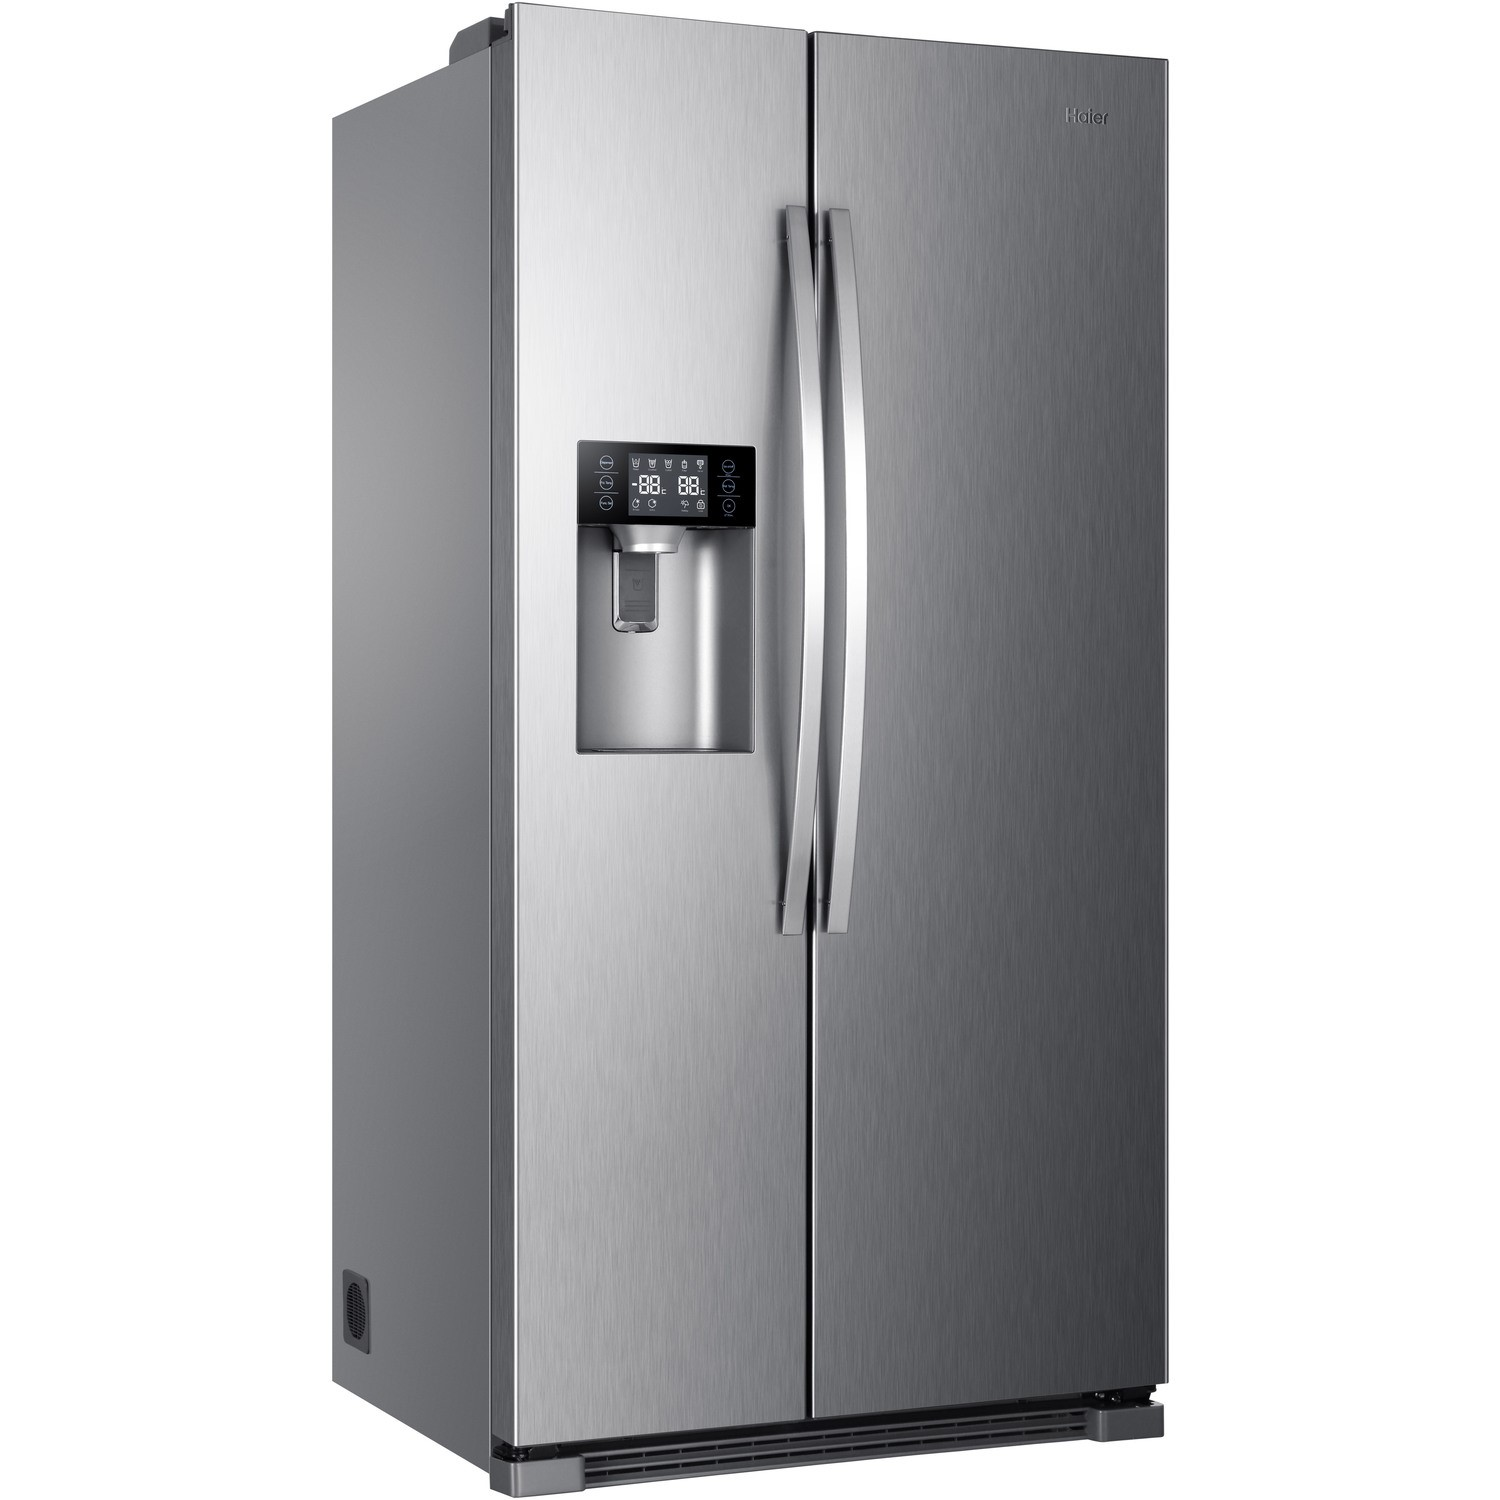 Fridge Freezer With Ice And Water Part - 19: Haier HRF-630IM7 American Fridge Freezer With Ice And Water Dispenser -  Stainless Steel